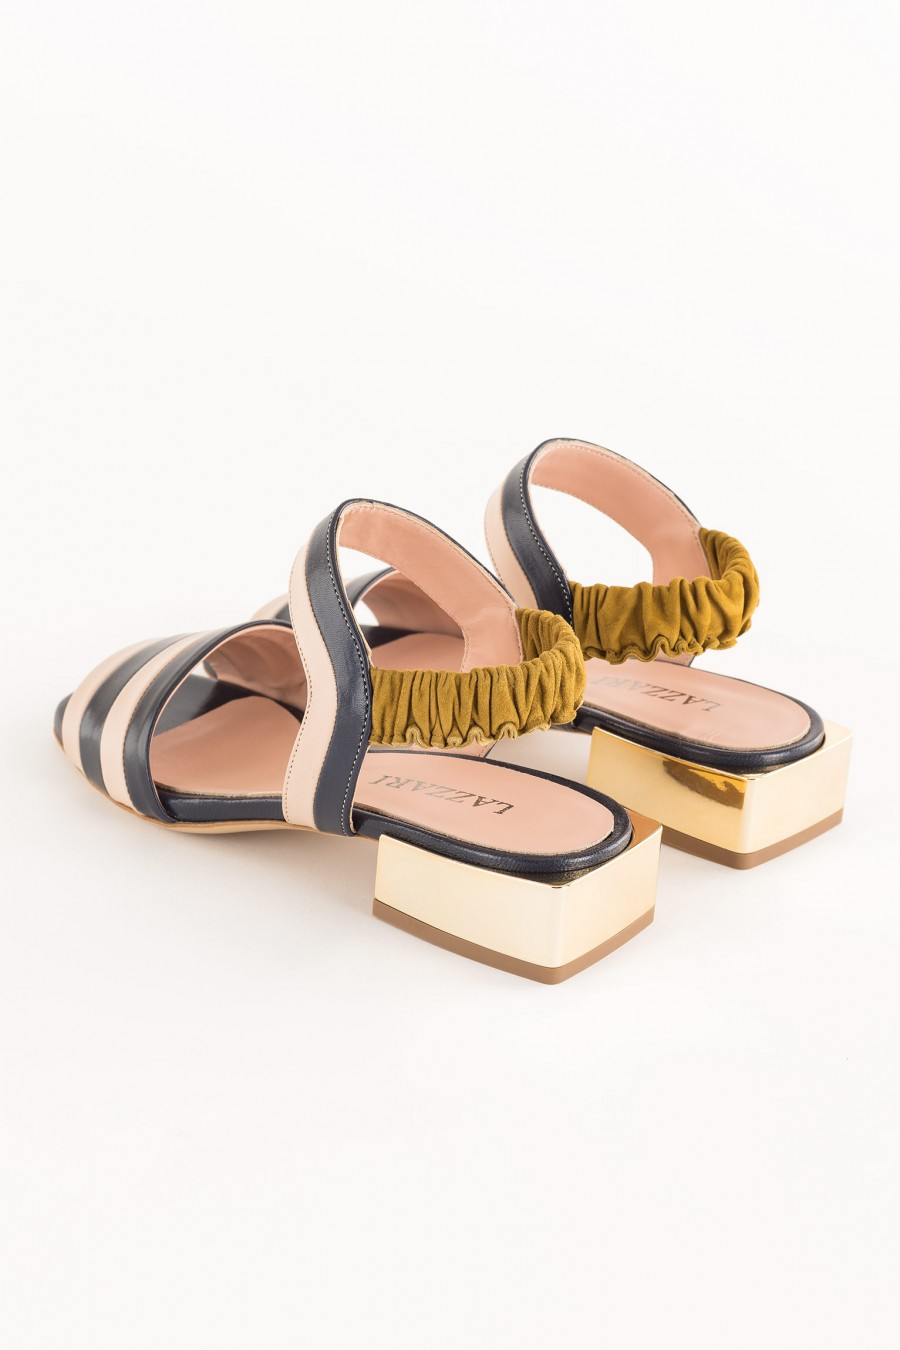 sandal with low heel